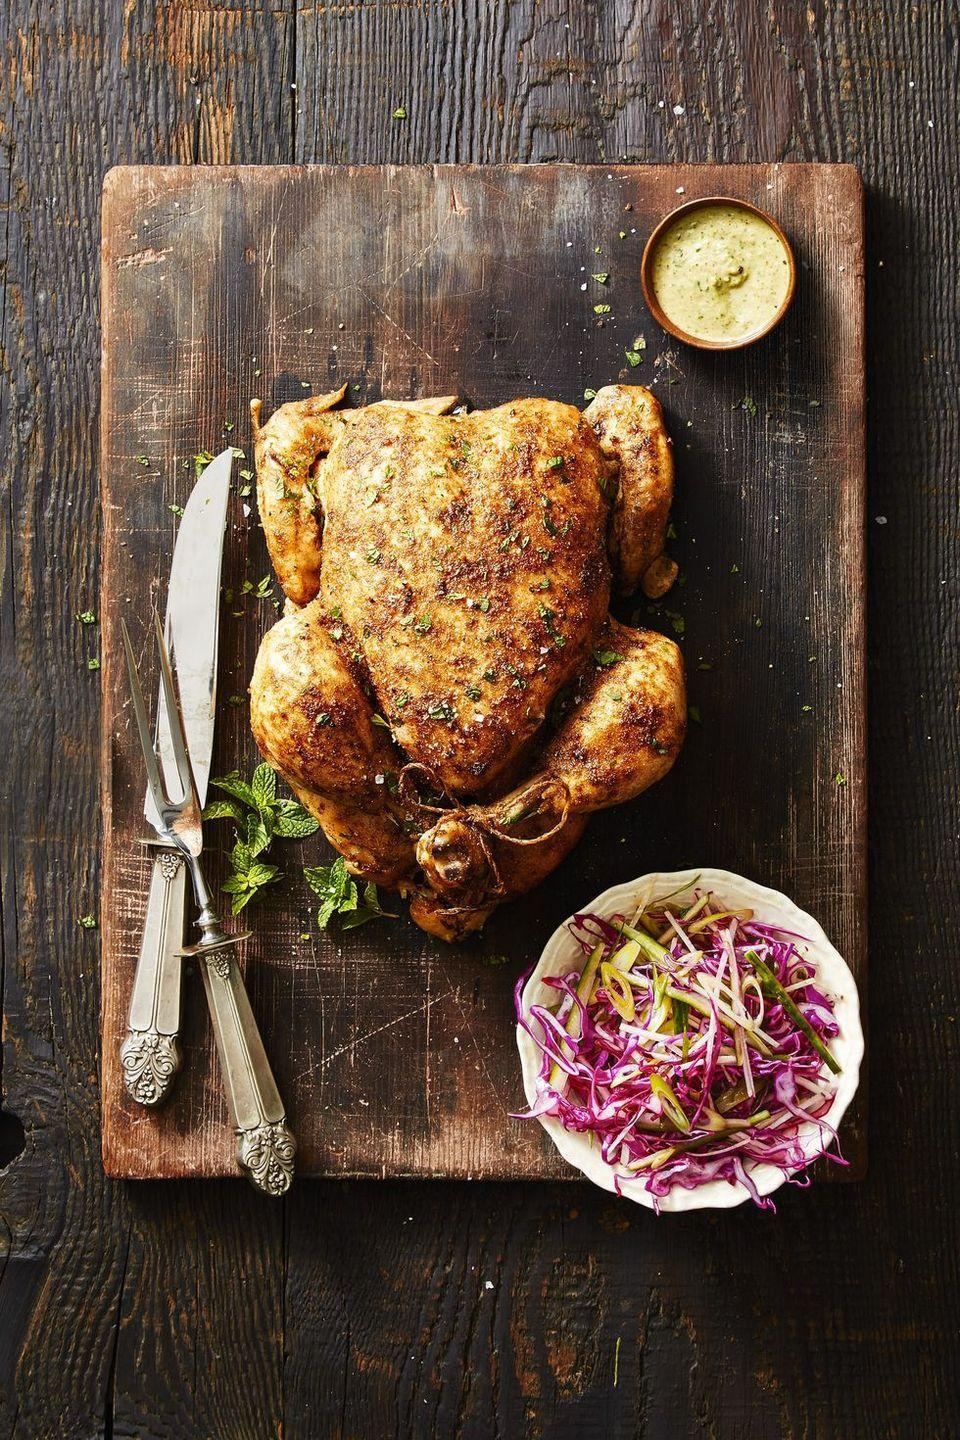 """<p>Looking to switch things up a bit this year? Try swapping out the usual turkey for this delicious, juicy chicken instead.<br></p><p><em><a href=""""https://www.goodhousekeeping.com/food-recipes/a42374/crock-pot-chicken-walnut-herb-recipe/"""" rel=""""nofollow noopener"""" target=""""_blank"""" data-ylk=""""slk:Get the recipe for Crock-Pot Chicken with Walnut-Herb Sauce »"""" class=""""link rapid-noclick-resp"""">Get the recipe for Crock-Pot Chicken with Walnut-Herb Sauce »</a></em></p>"""